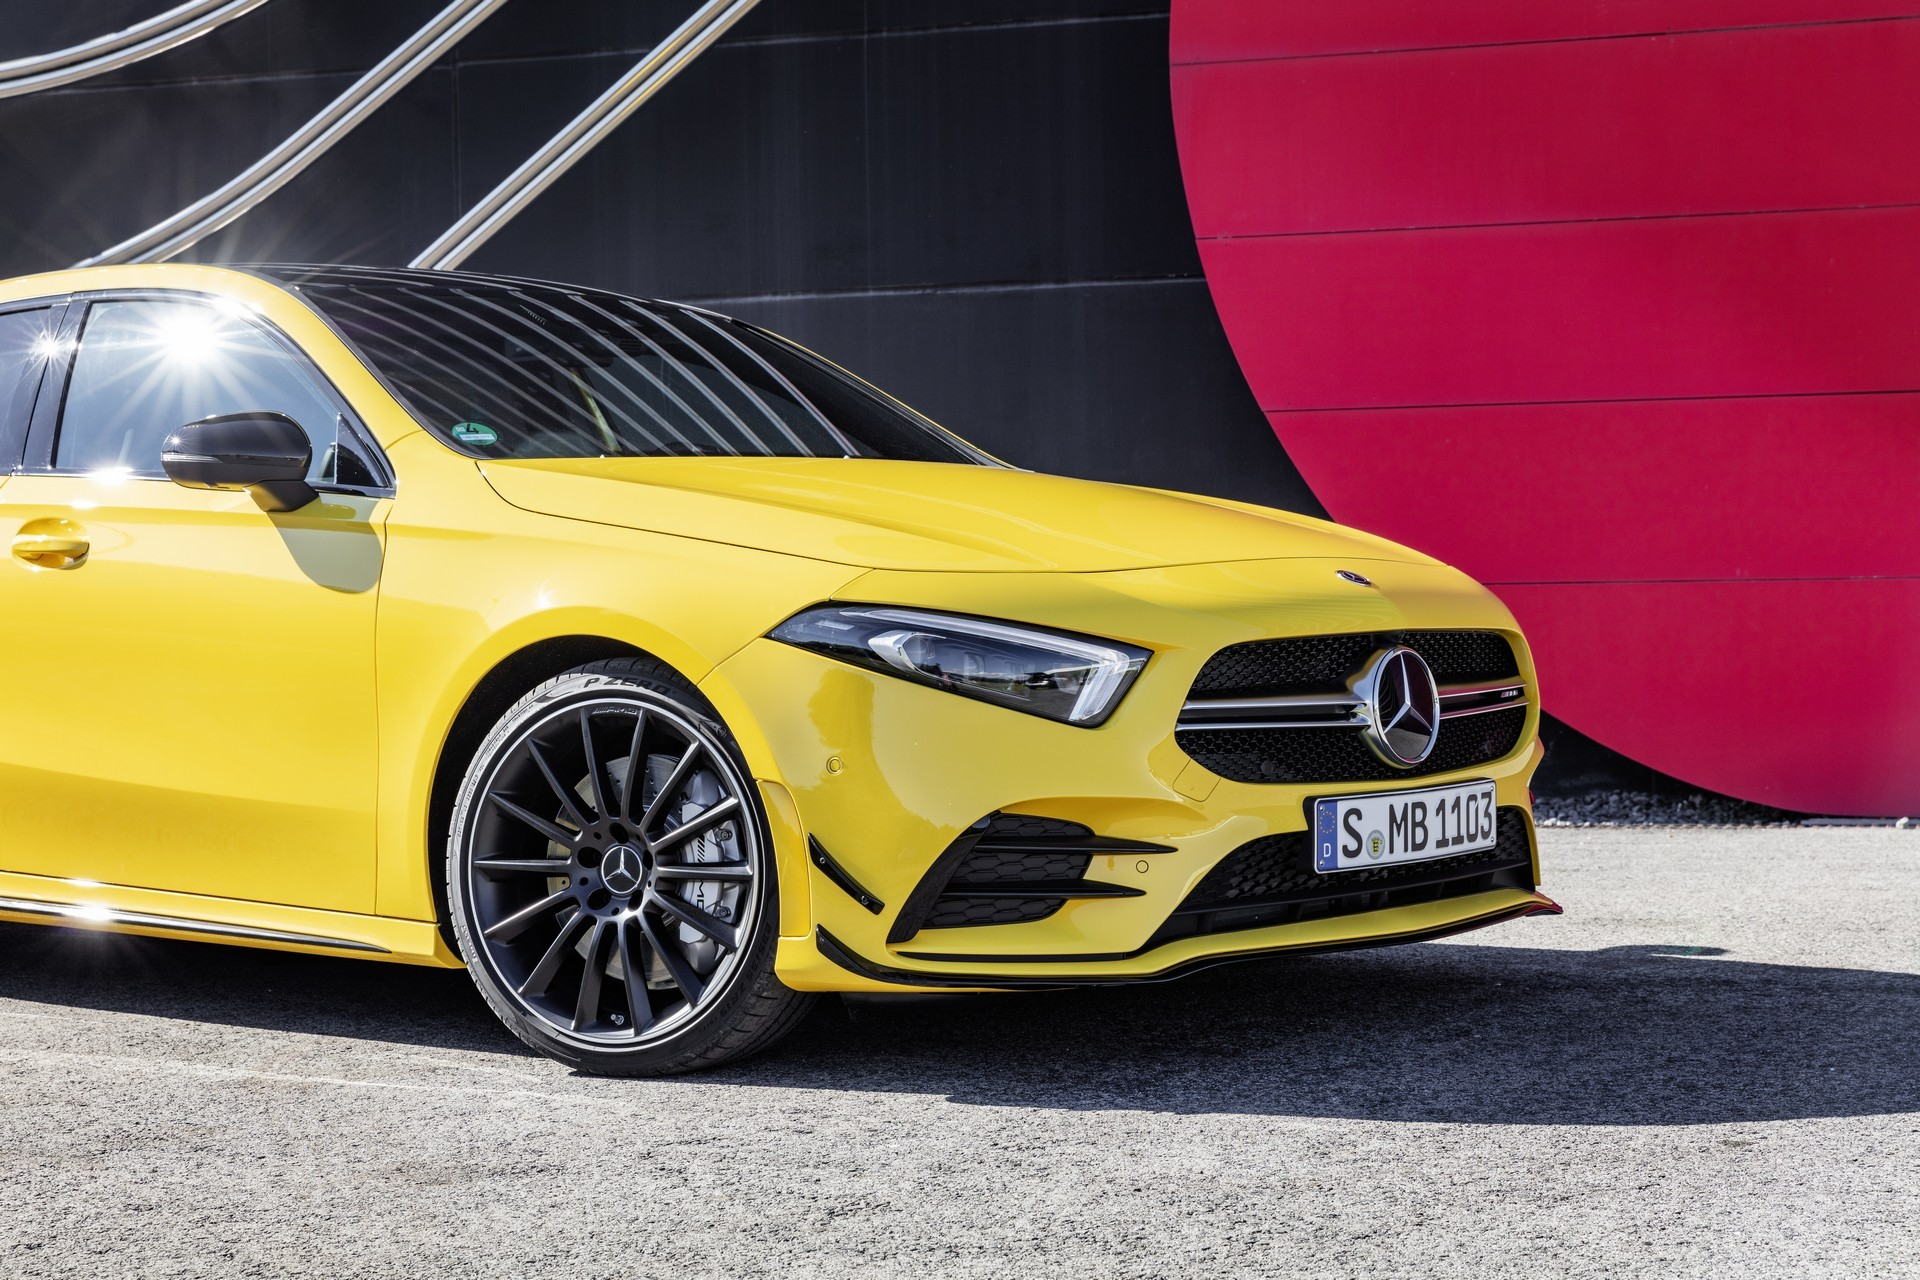 Mercedes a35 amg price